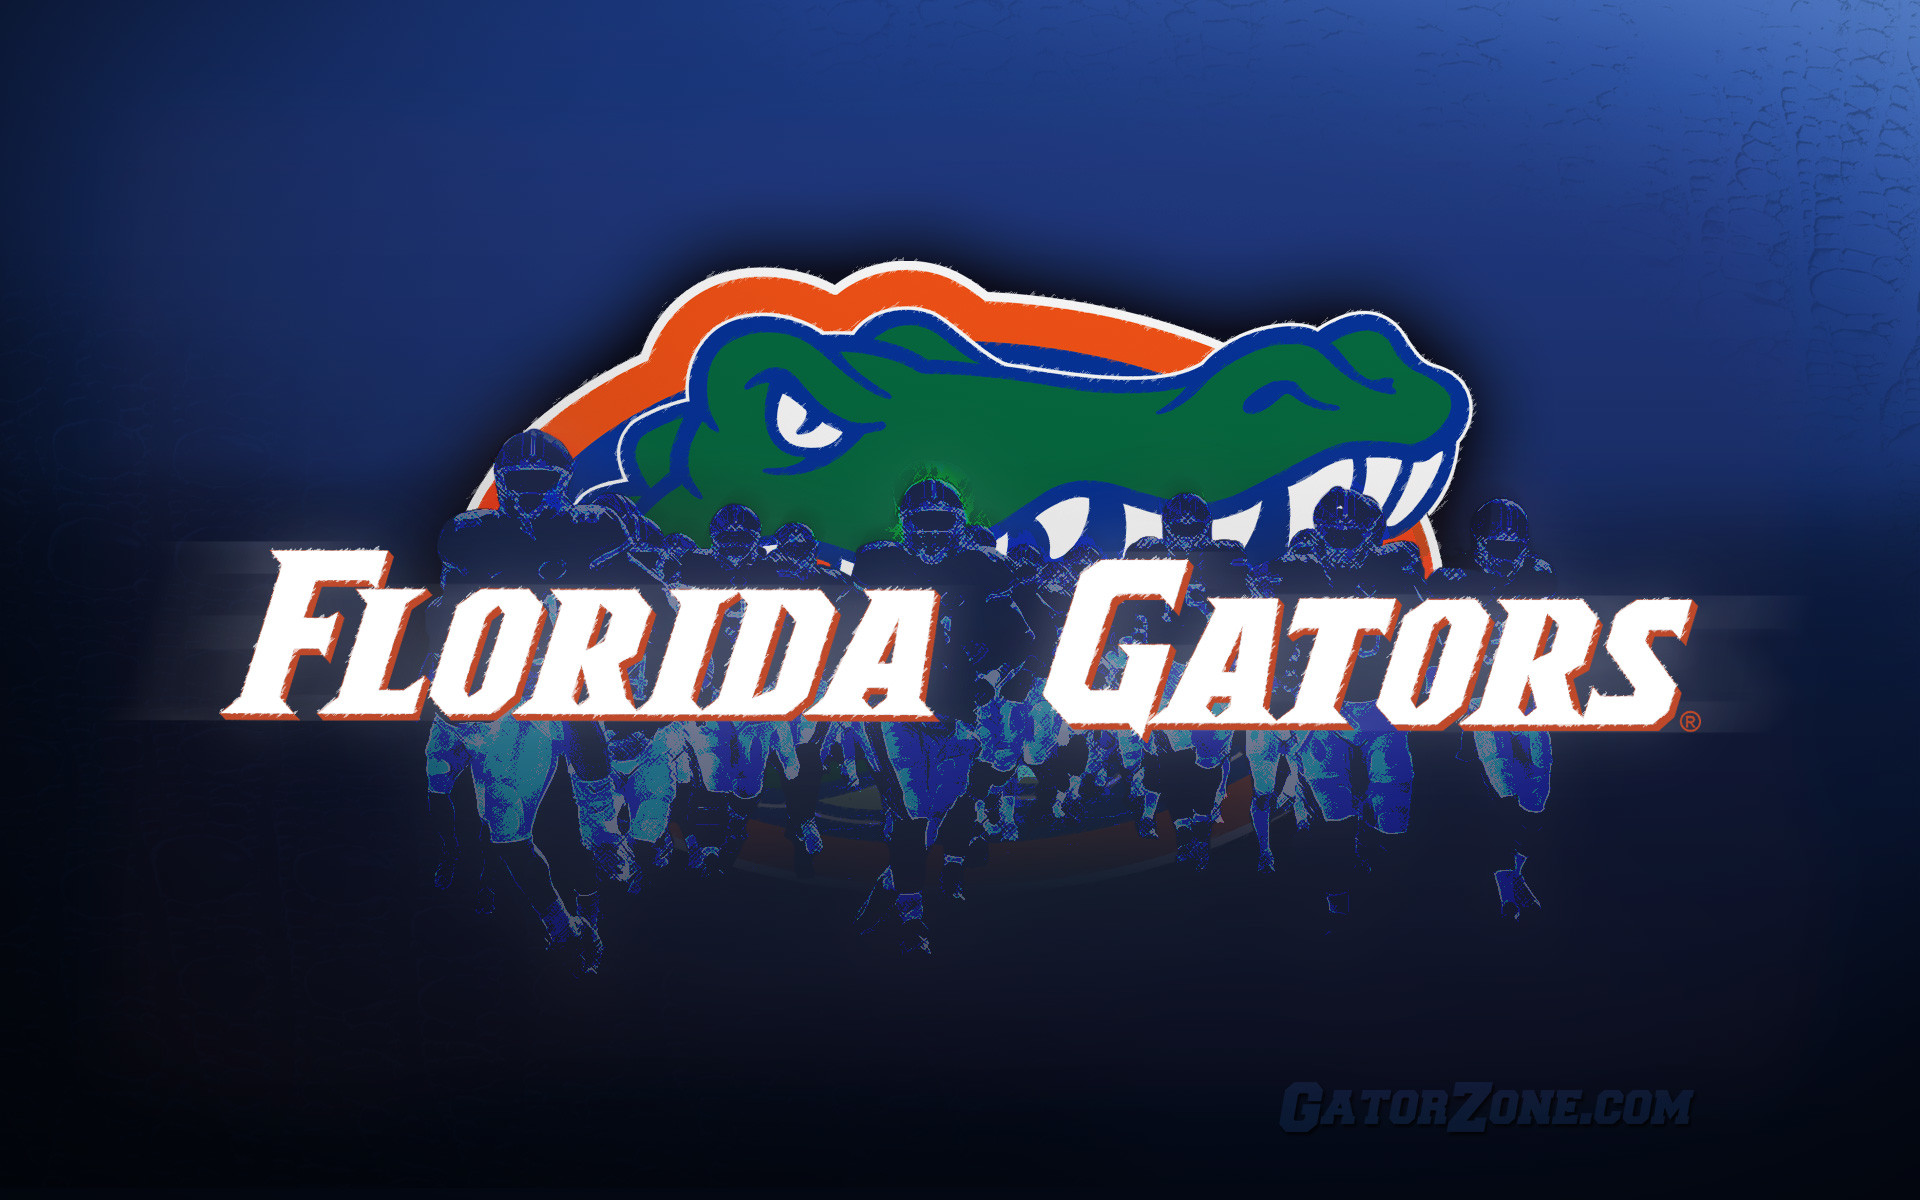 1920x1200 Florida Gators Football Wallpaper - Football Wallpaper HD, Football .